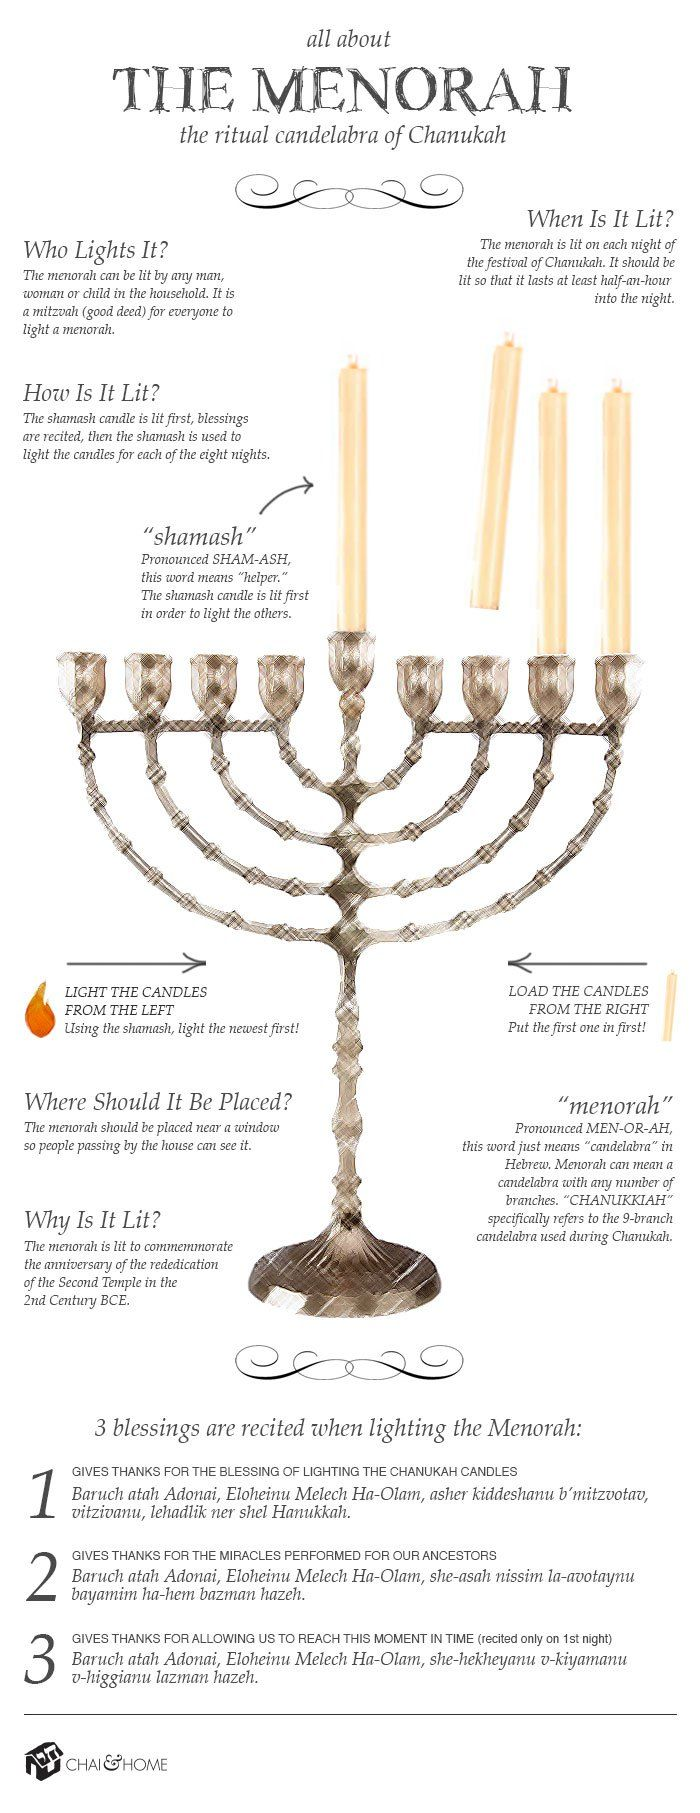 All About the Menorah Infographic